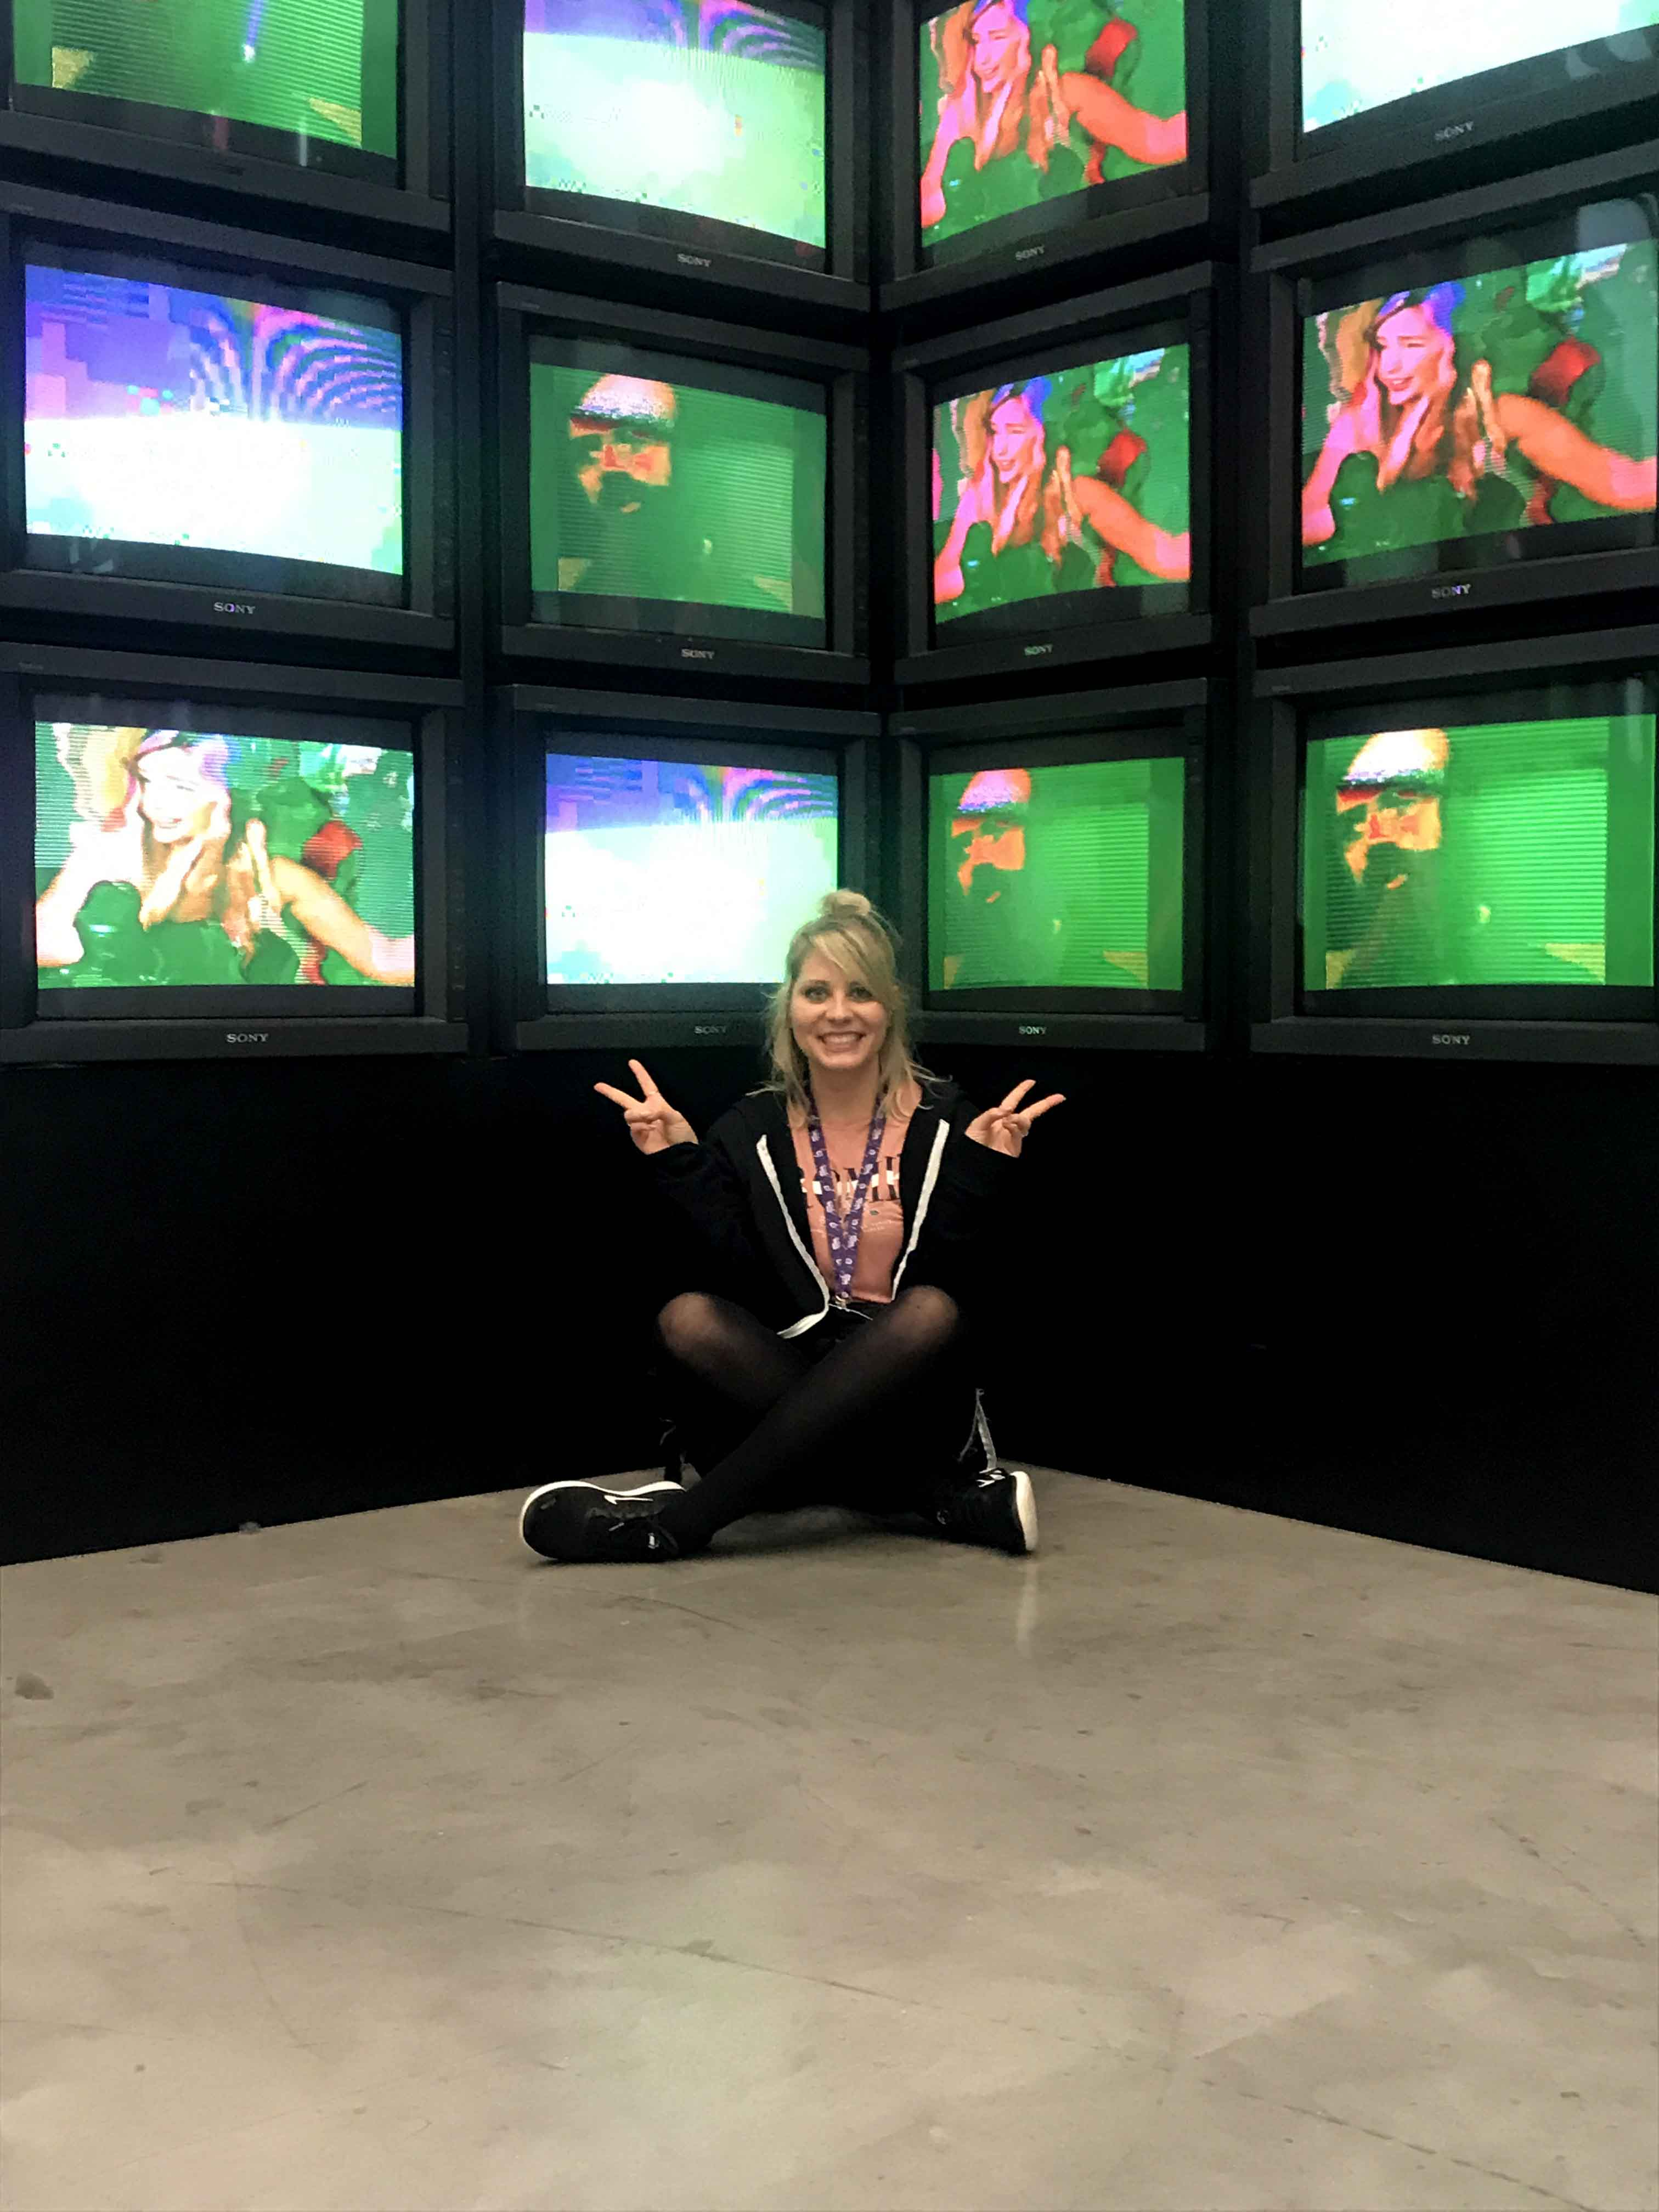 CEO Kat sat on the floor with TVs